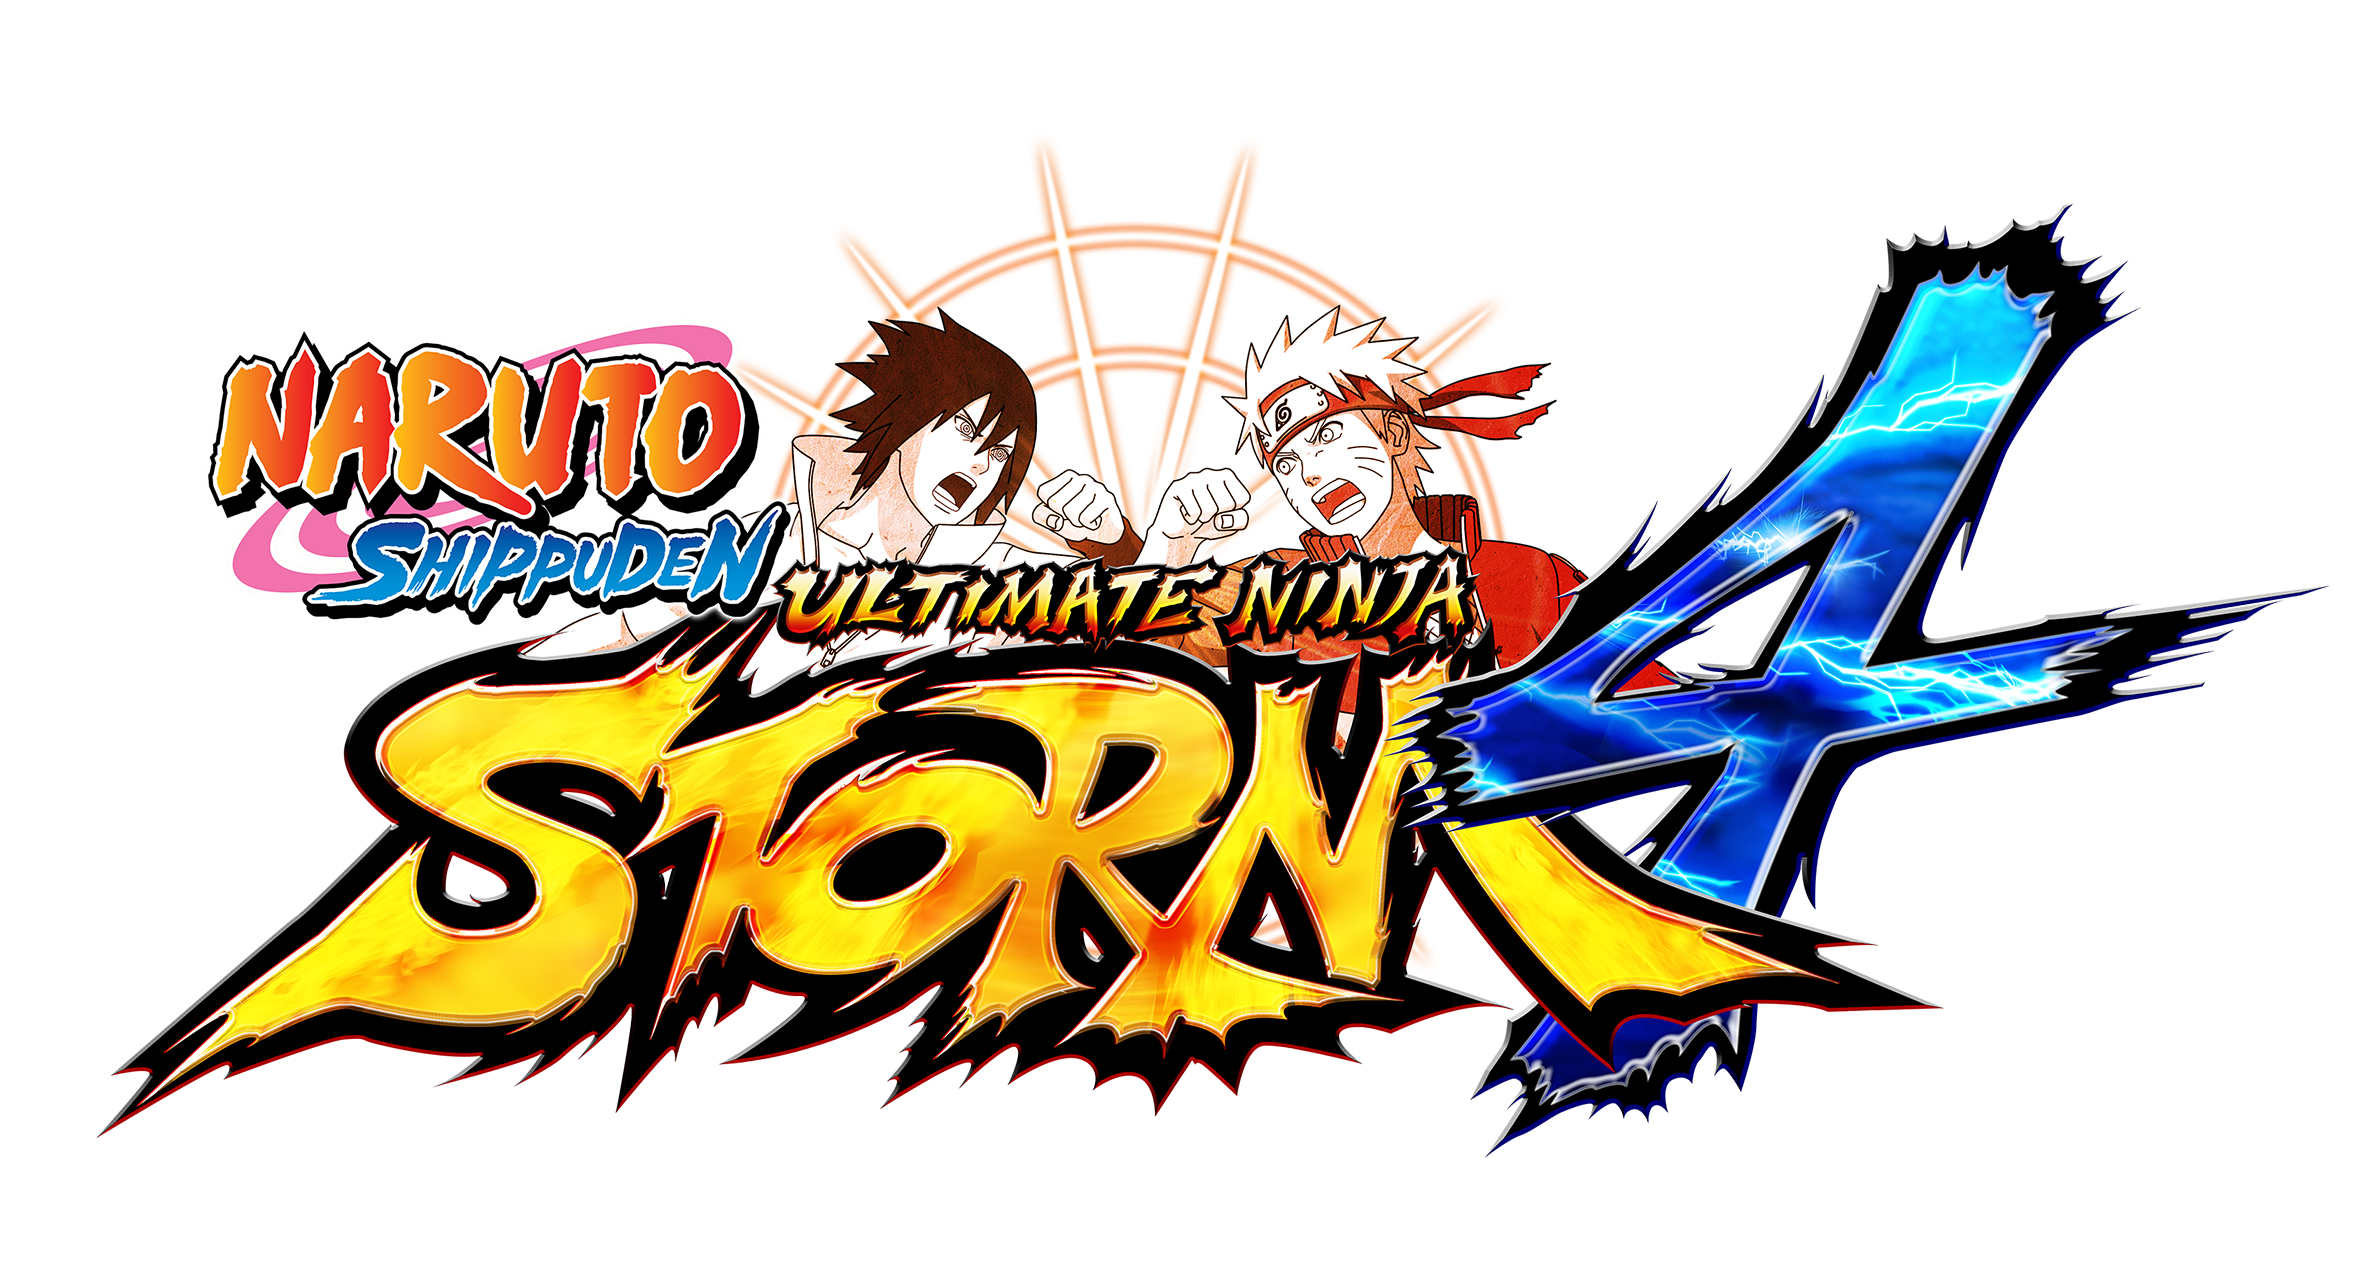 Naruto Shippuden: Ultimate Ninja Storm 4 Announced for PS4, Xbox One, and PC